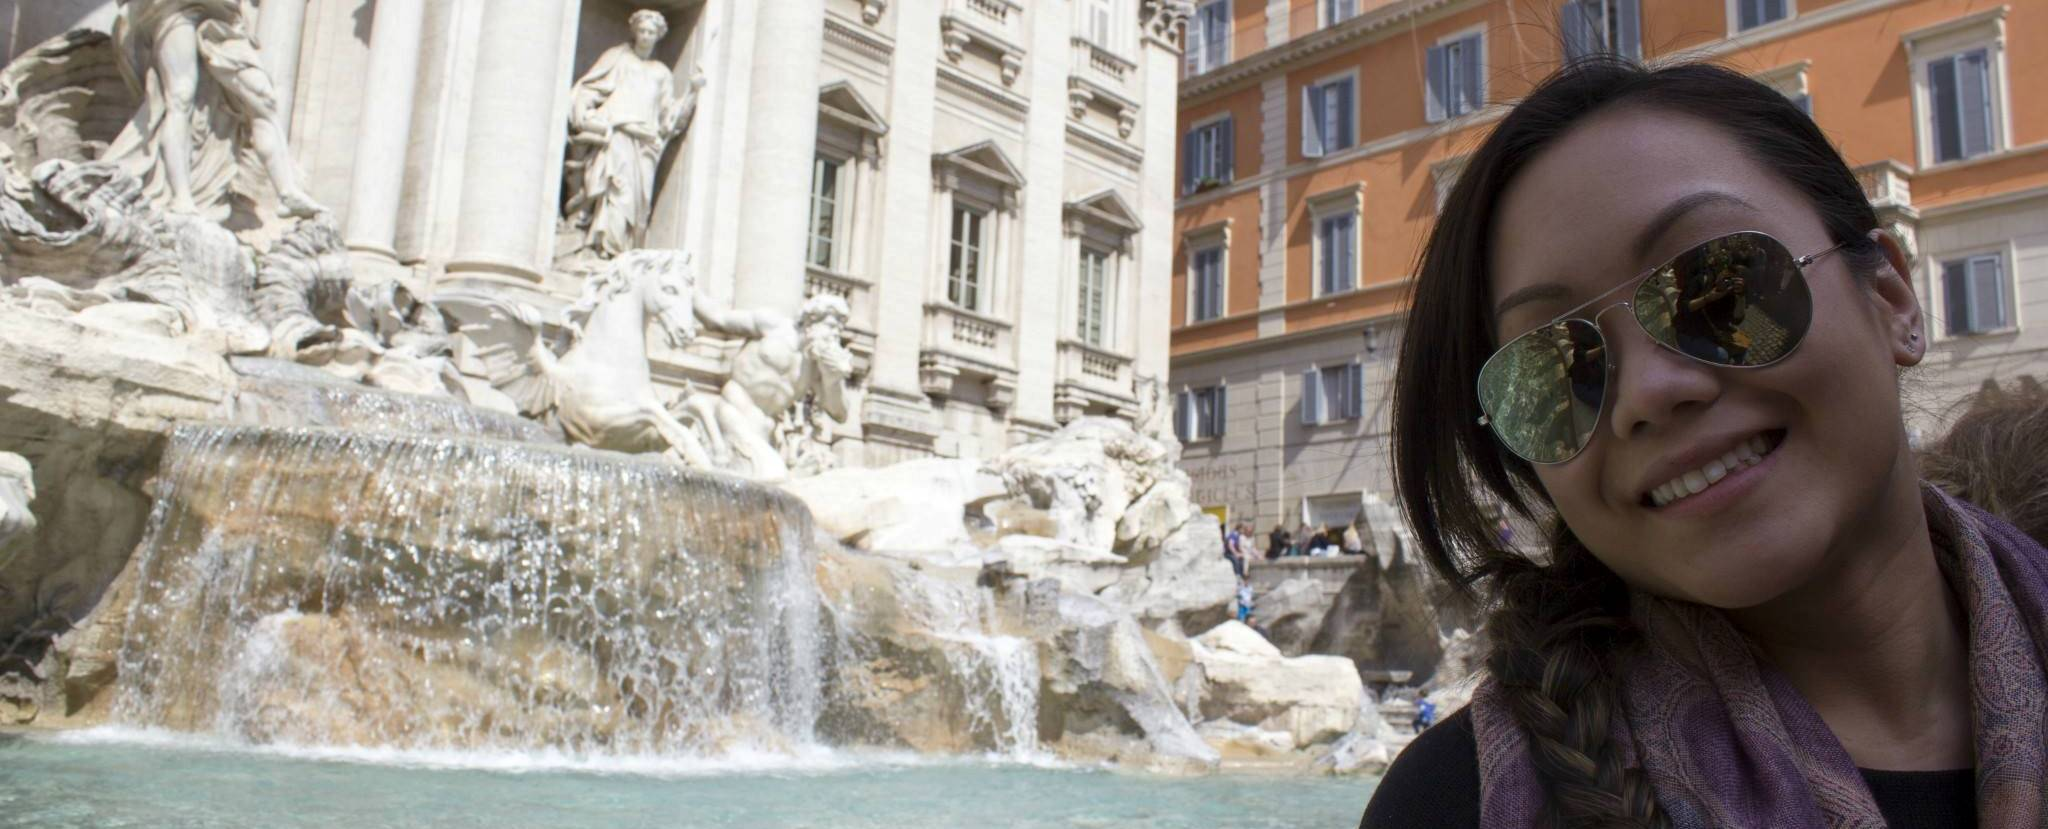 croppe romeitaly_make_wishes_at_the_trevi_portrait(jessikamercado)